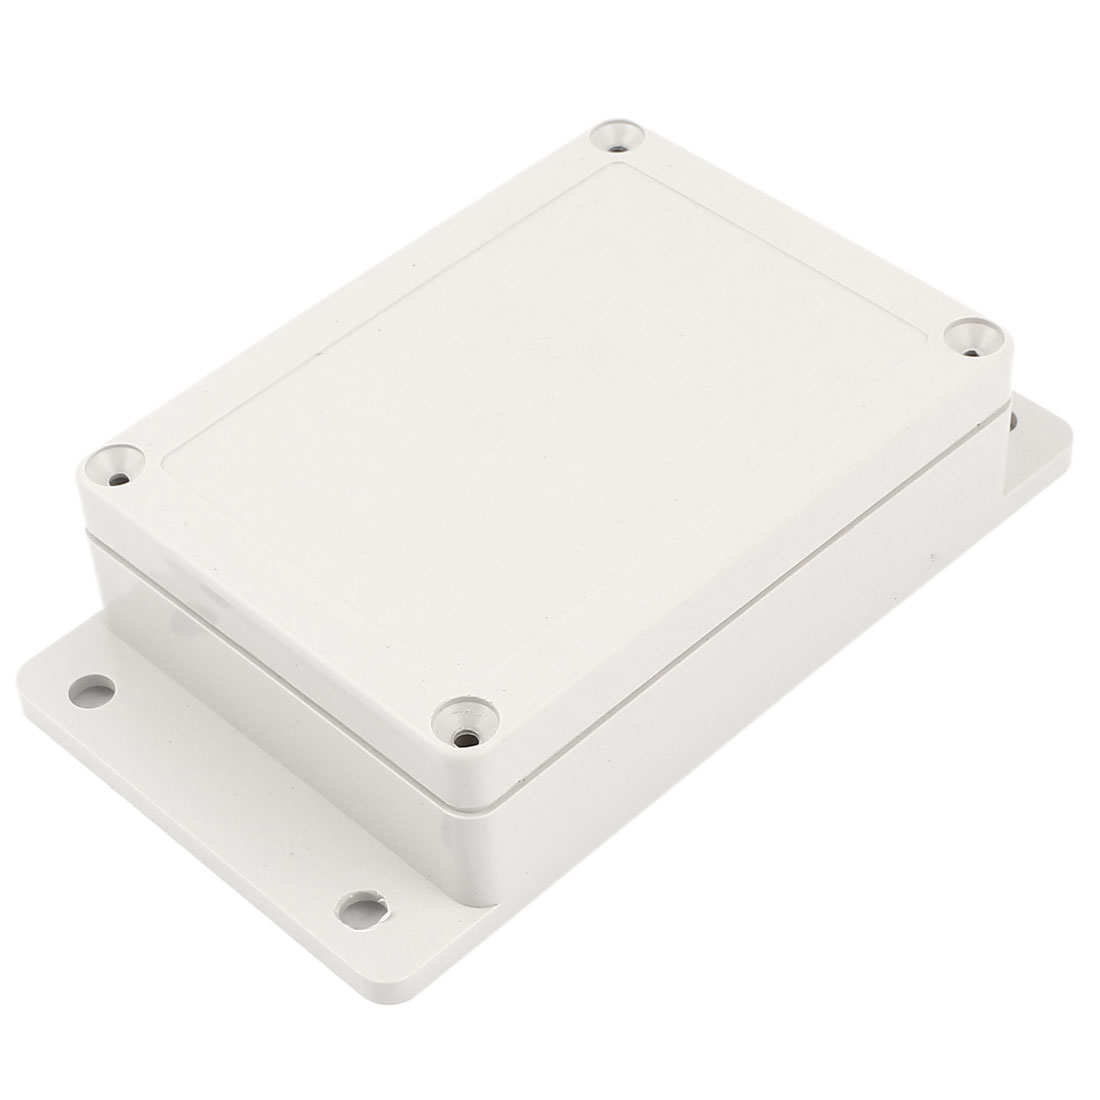 115mm x 85mm x 35mm Waterproof Plastic Sealed DIY Joint Electrical Junction Box